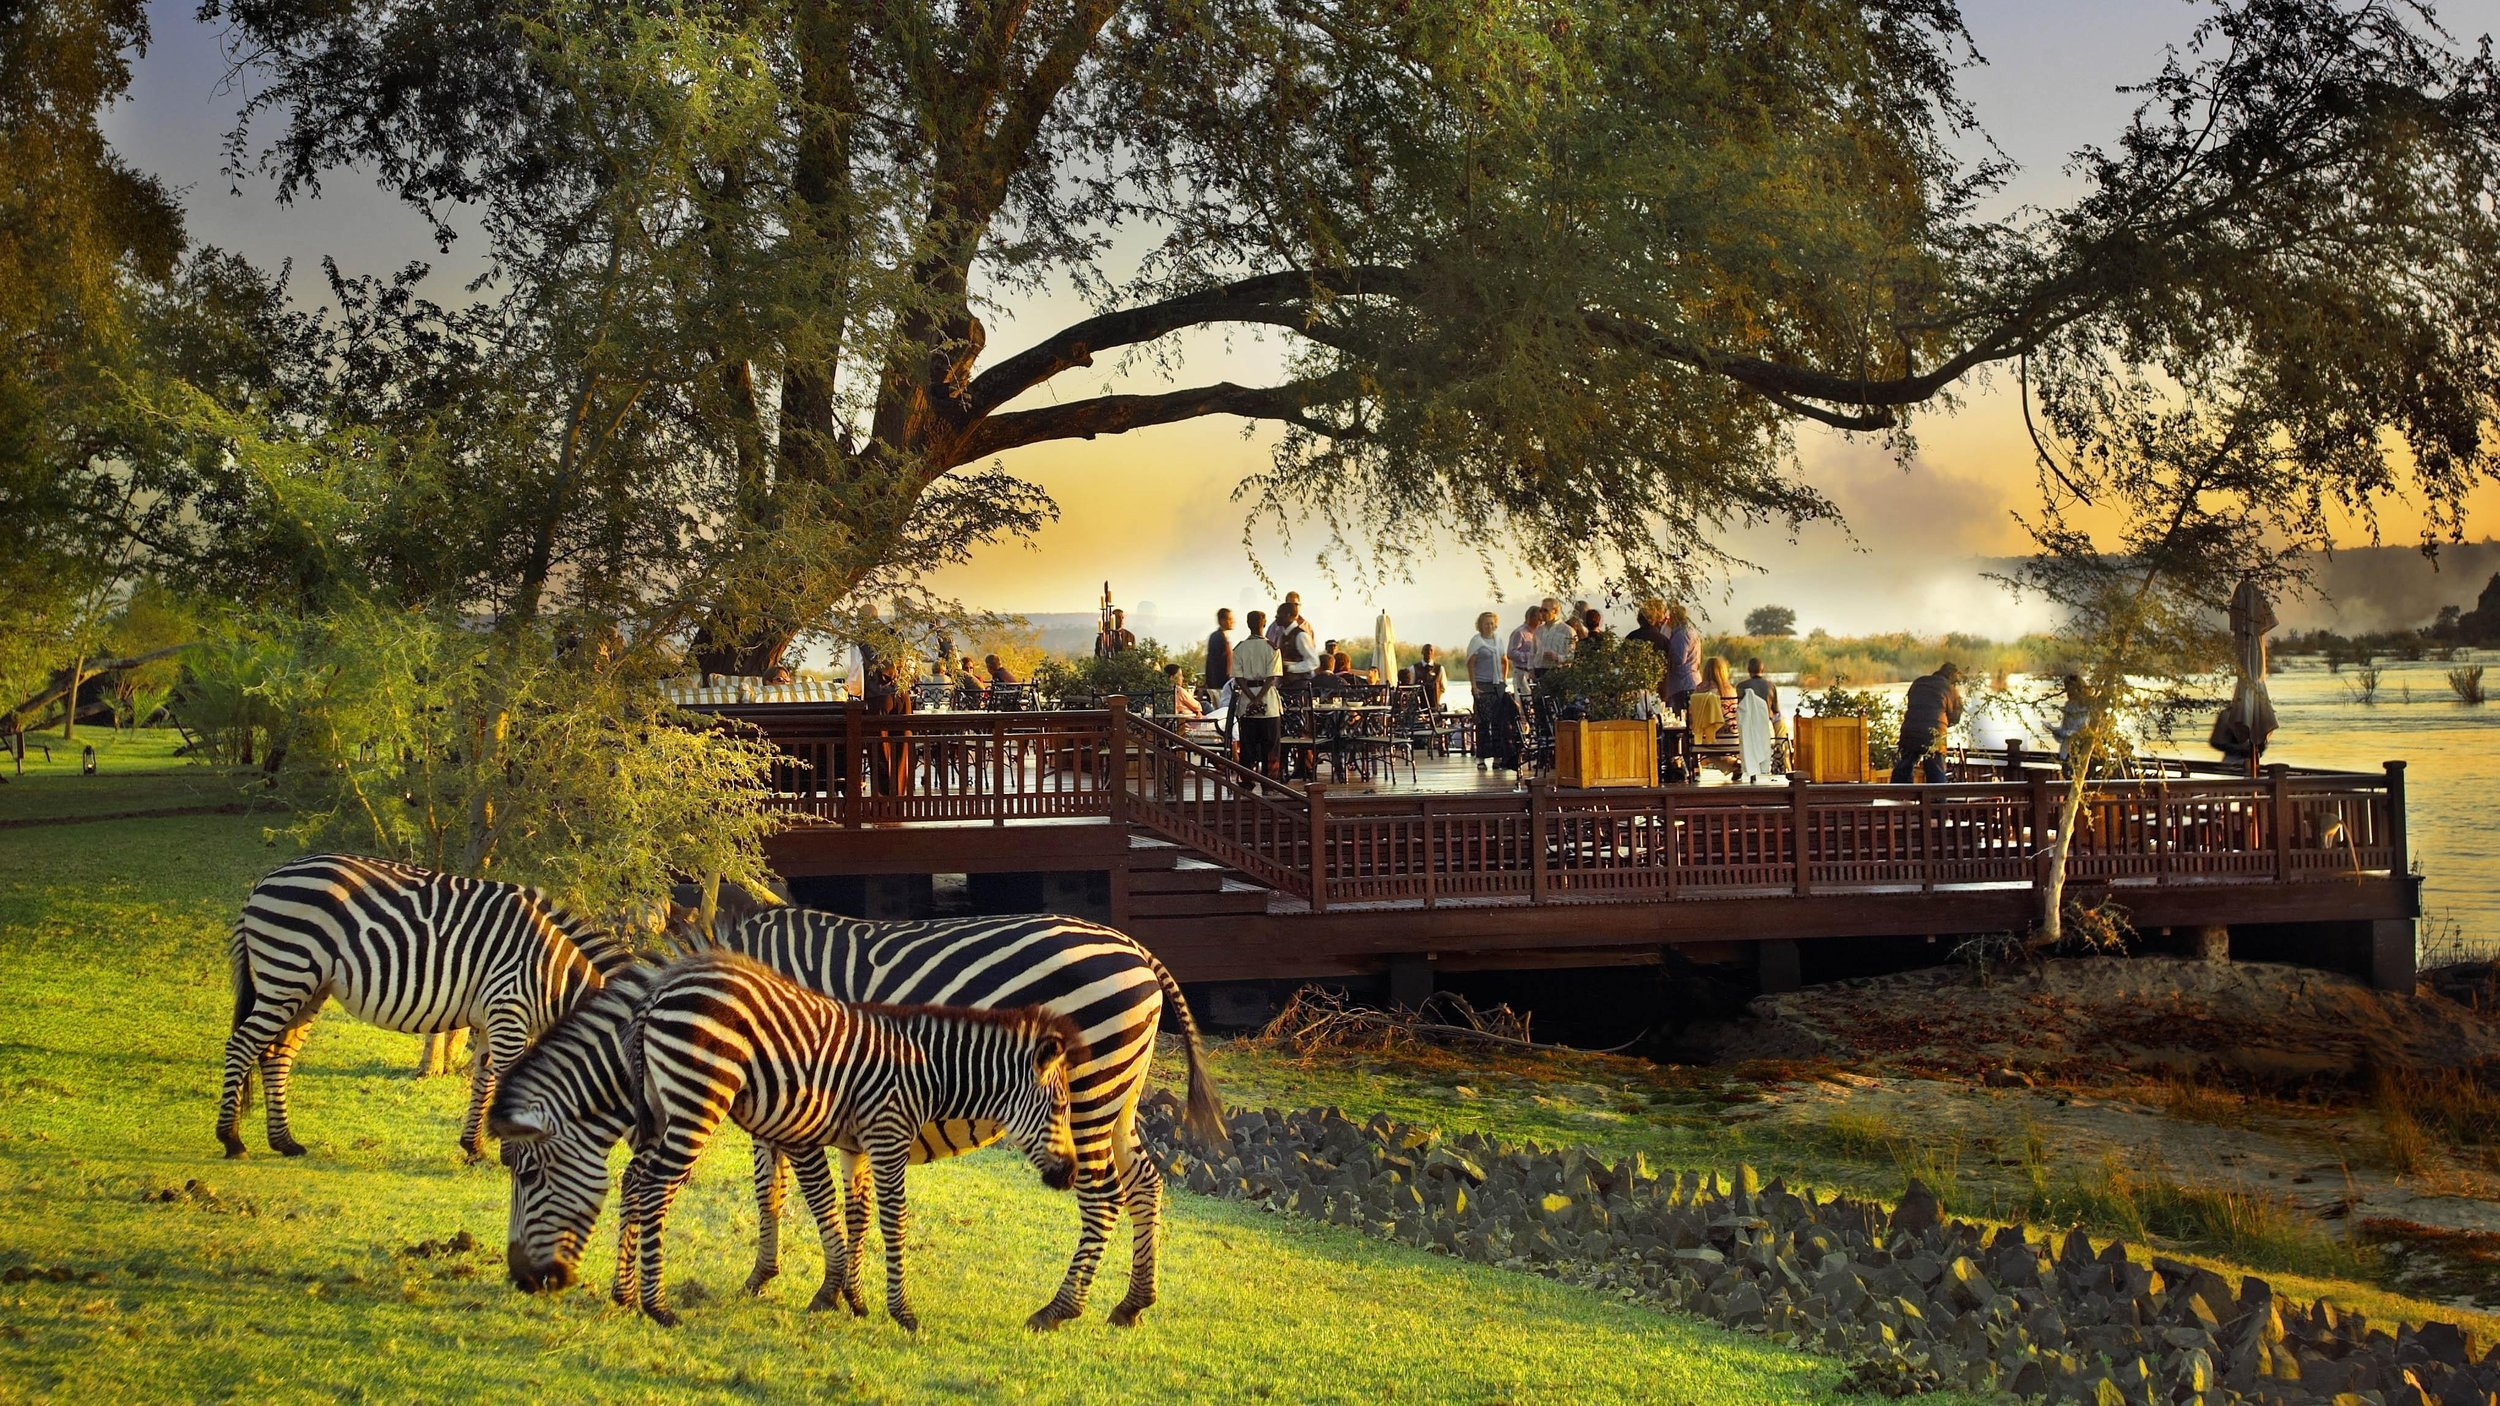 The Sundeck with zebras in the foreground1.jpg